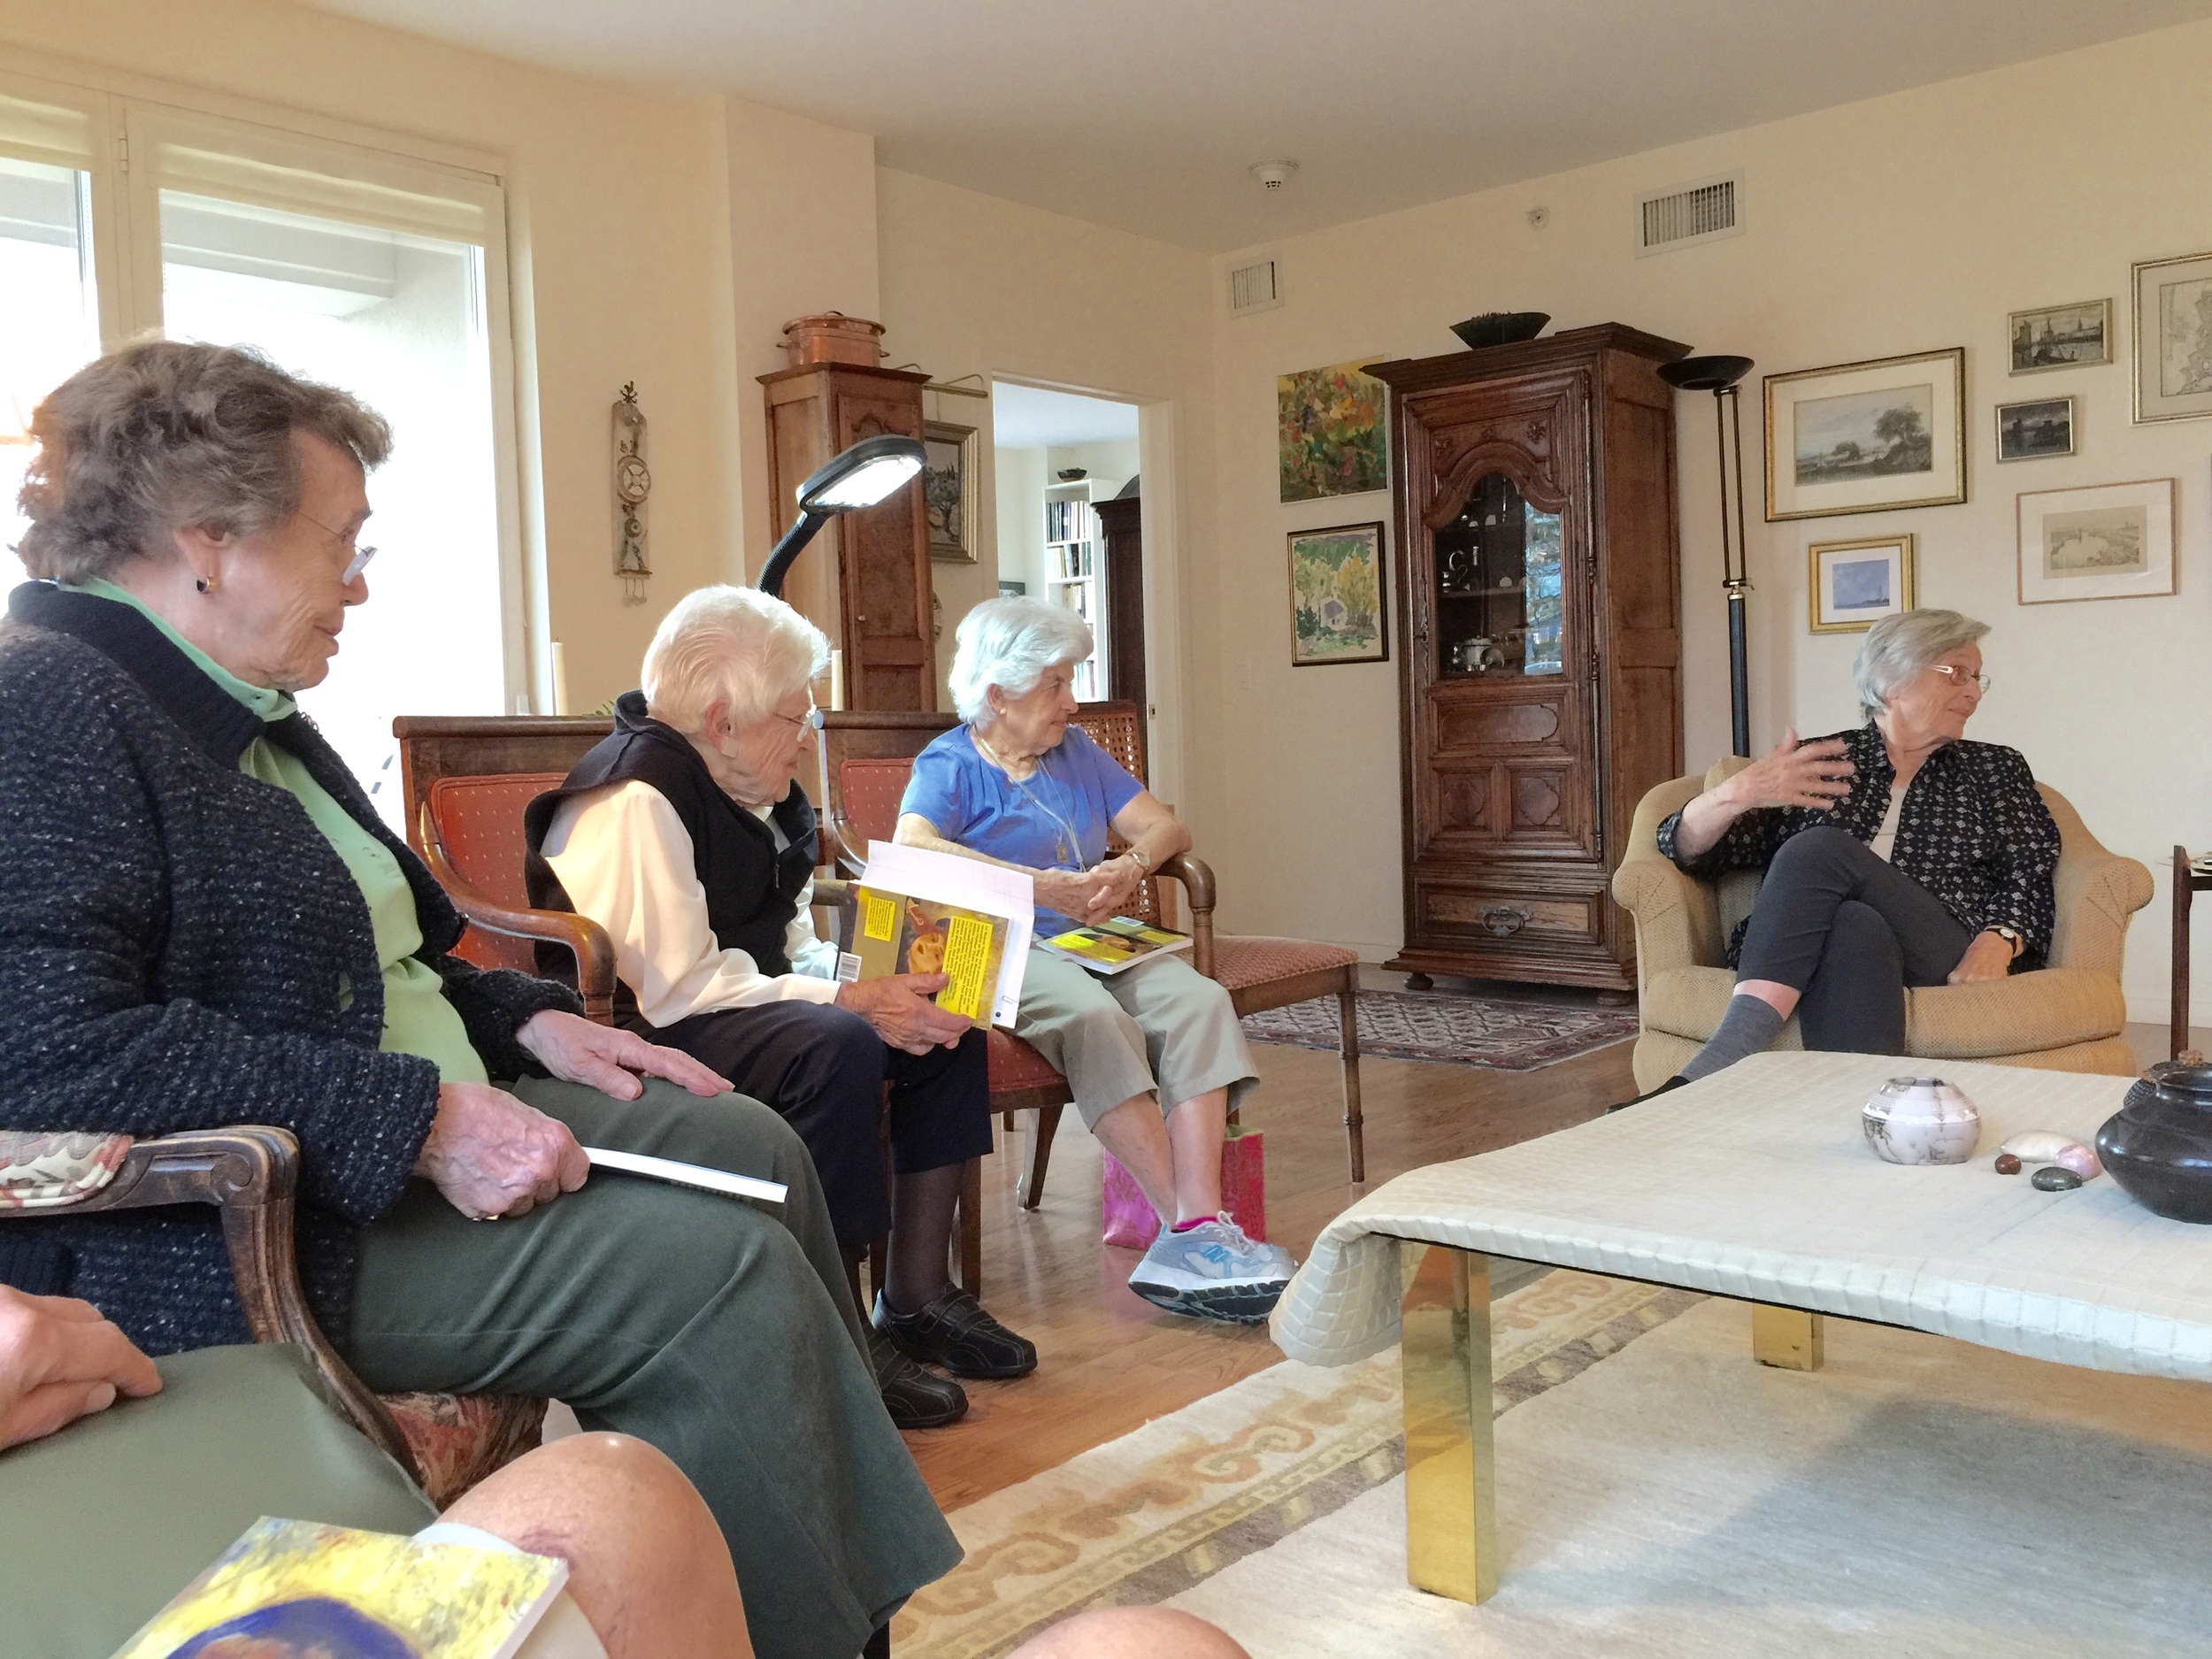 French Conversation group meeting in the home of a native-born French-speaking KOH resident